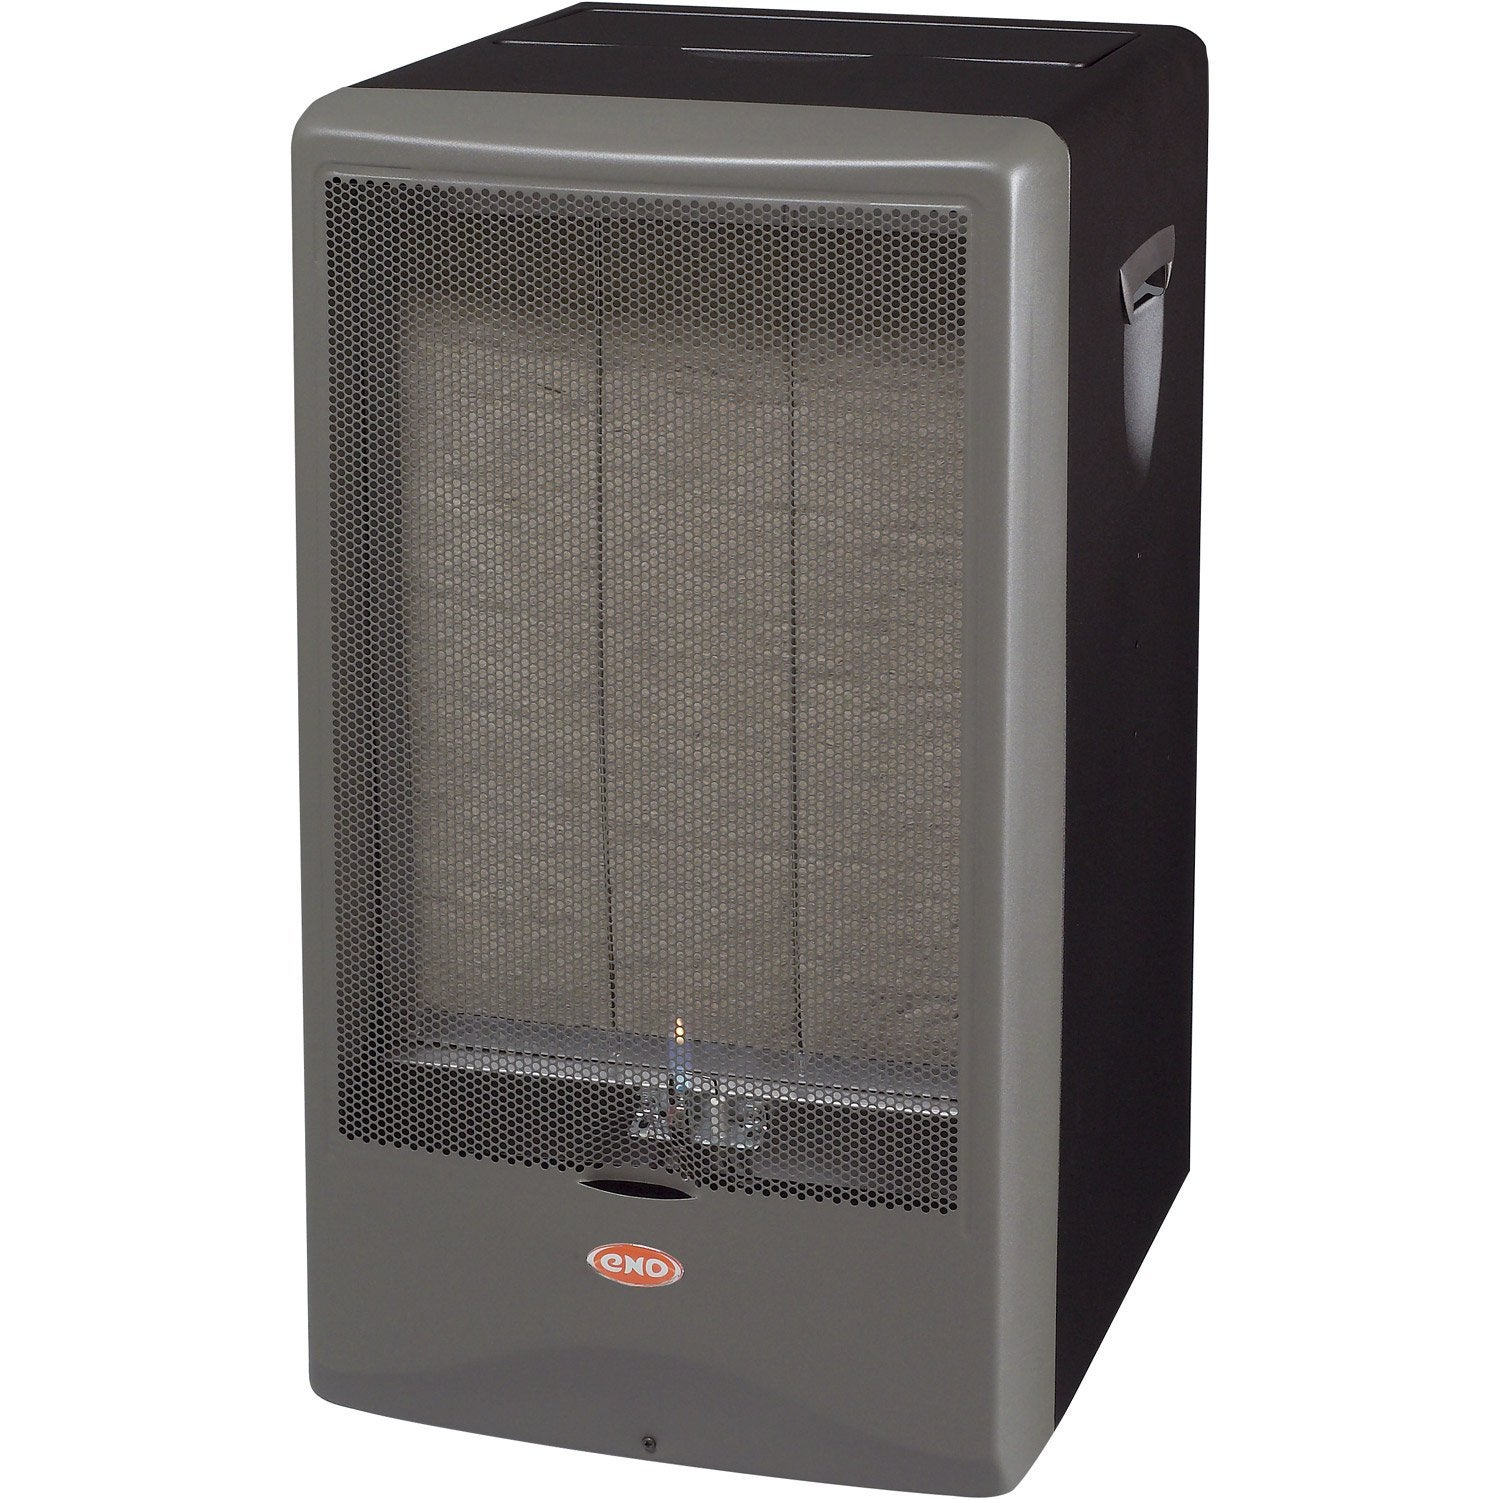 Chauffage gaz catalyse eno 3070 noir therm 2 8 kw - Chauffage d appoint basse consommation ...